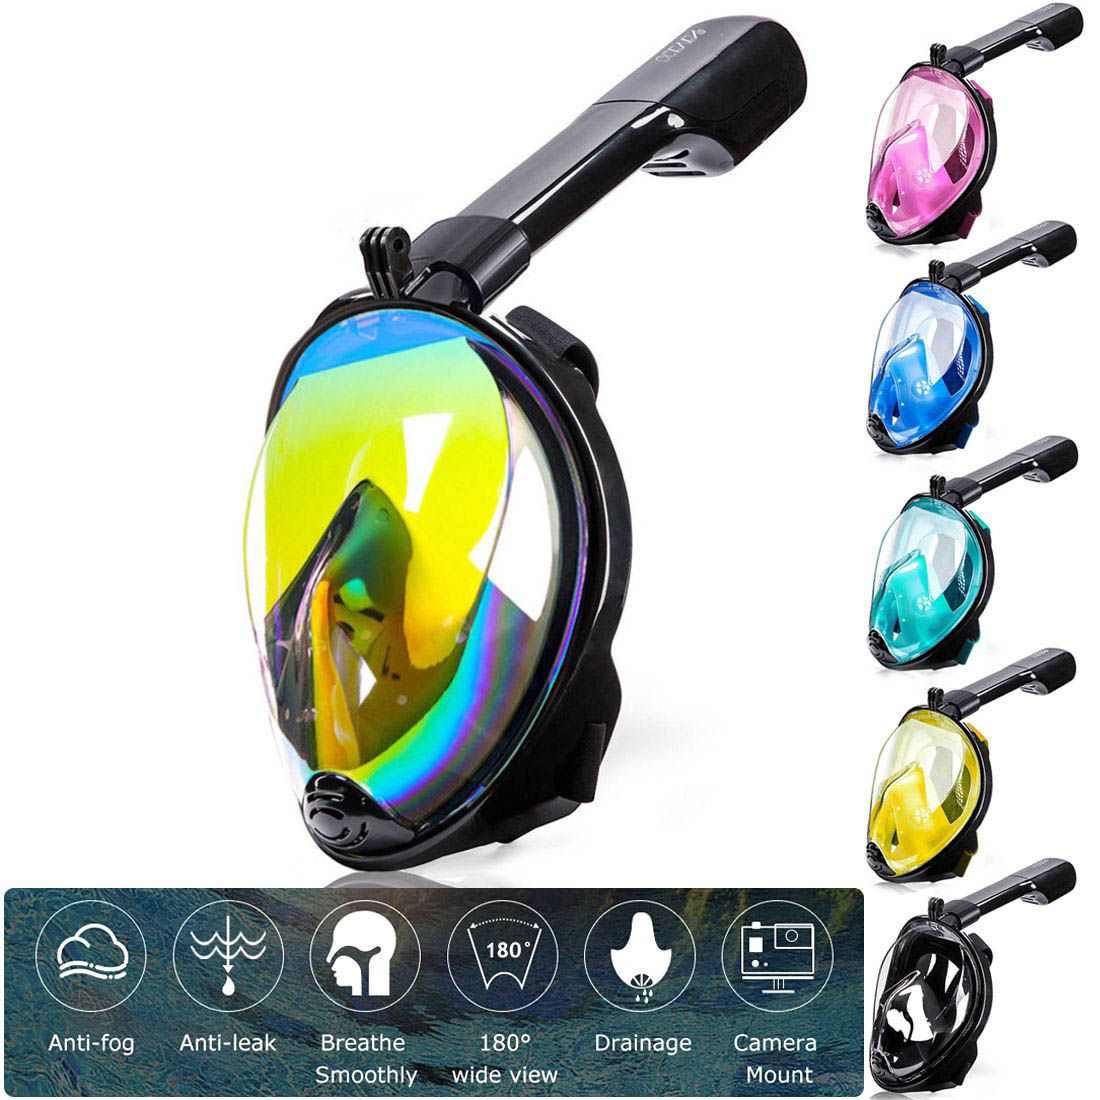 2020 New Diving Mask Scuba Mask Underwater Anti Fog Full Face Snorkeling Mask Women Men Kids  Swimming Snorkel Diving Equipment